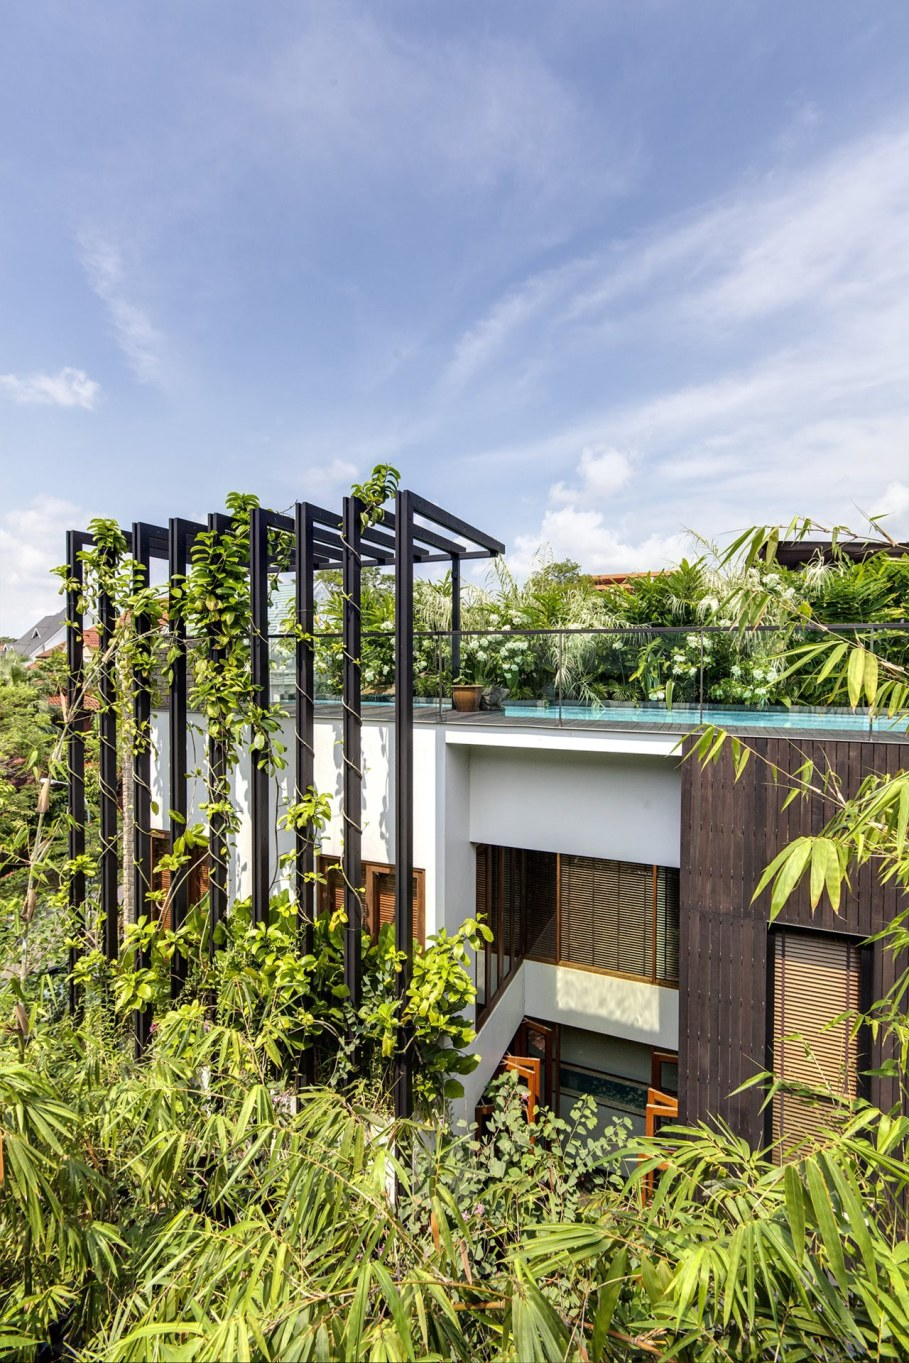 Tan's Garden Villa in Singapore - the outside view